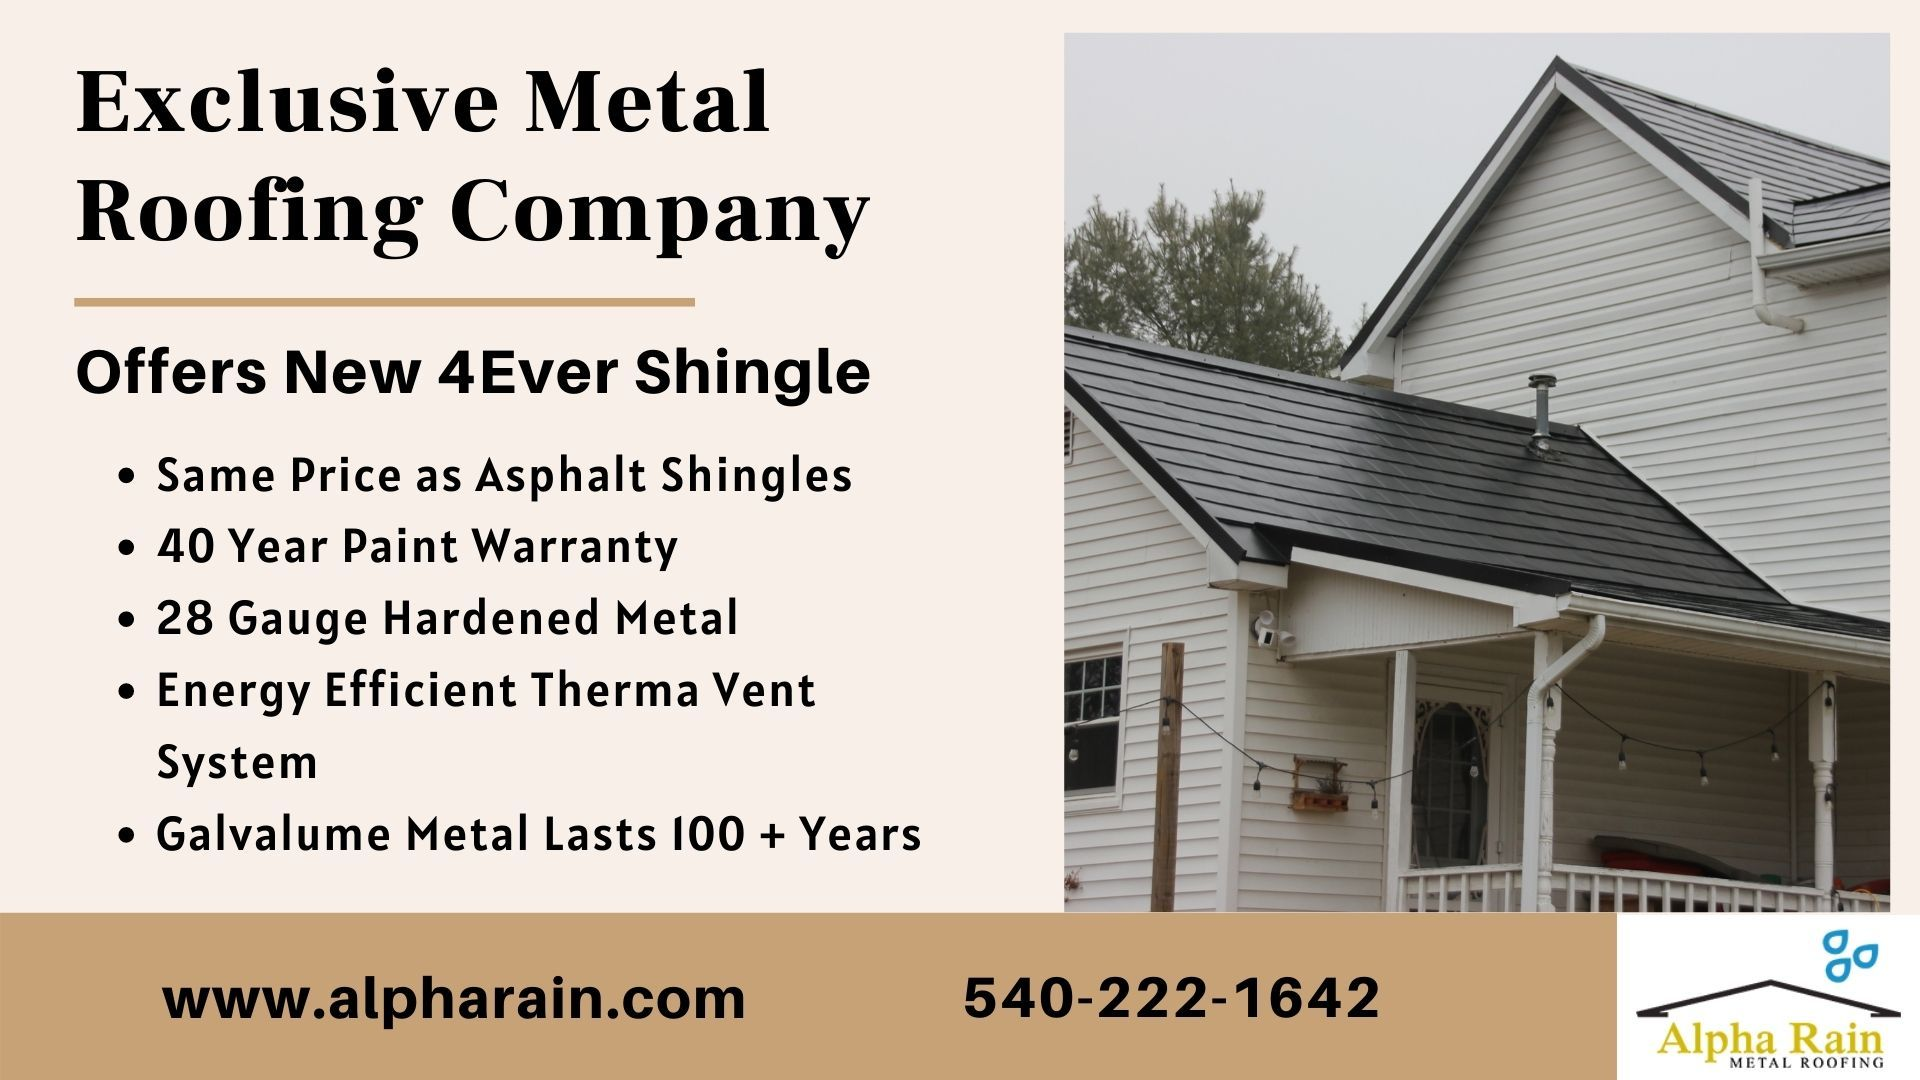 Specialized Metal Roofing Company Offering High Quality Metal Shingles In 2020 Metal Roof Metal Shingles Metal Roofing Systems